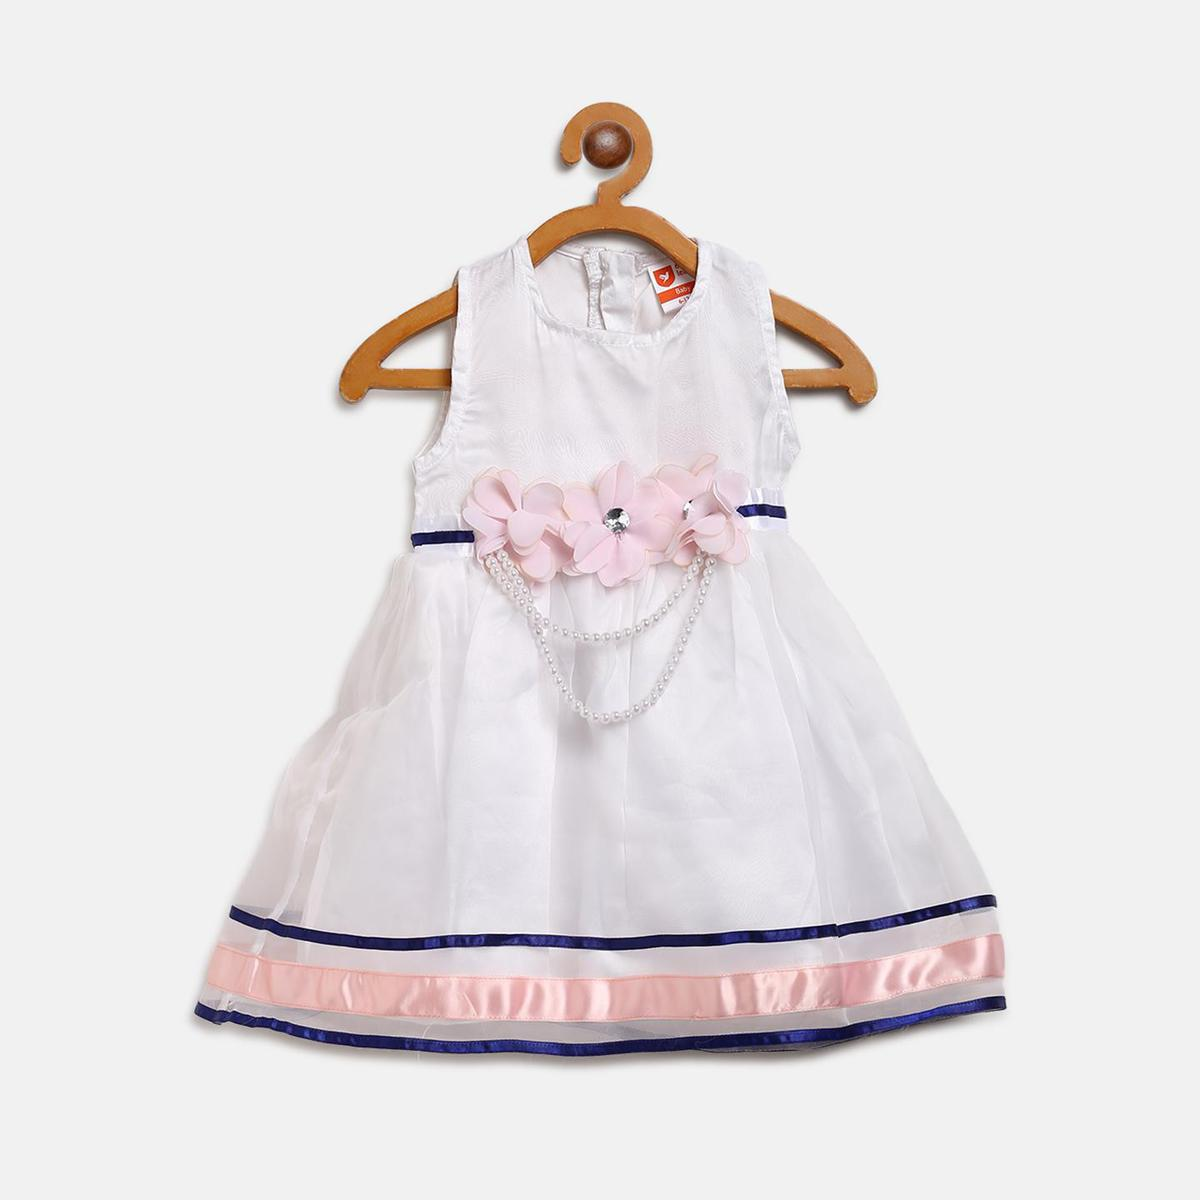 612 League - White Colored Solid Pearl Flower Organza Dress For Baby Girls